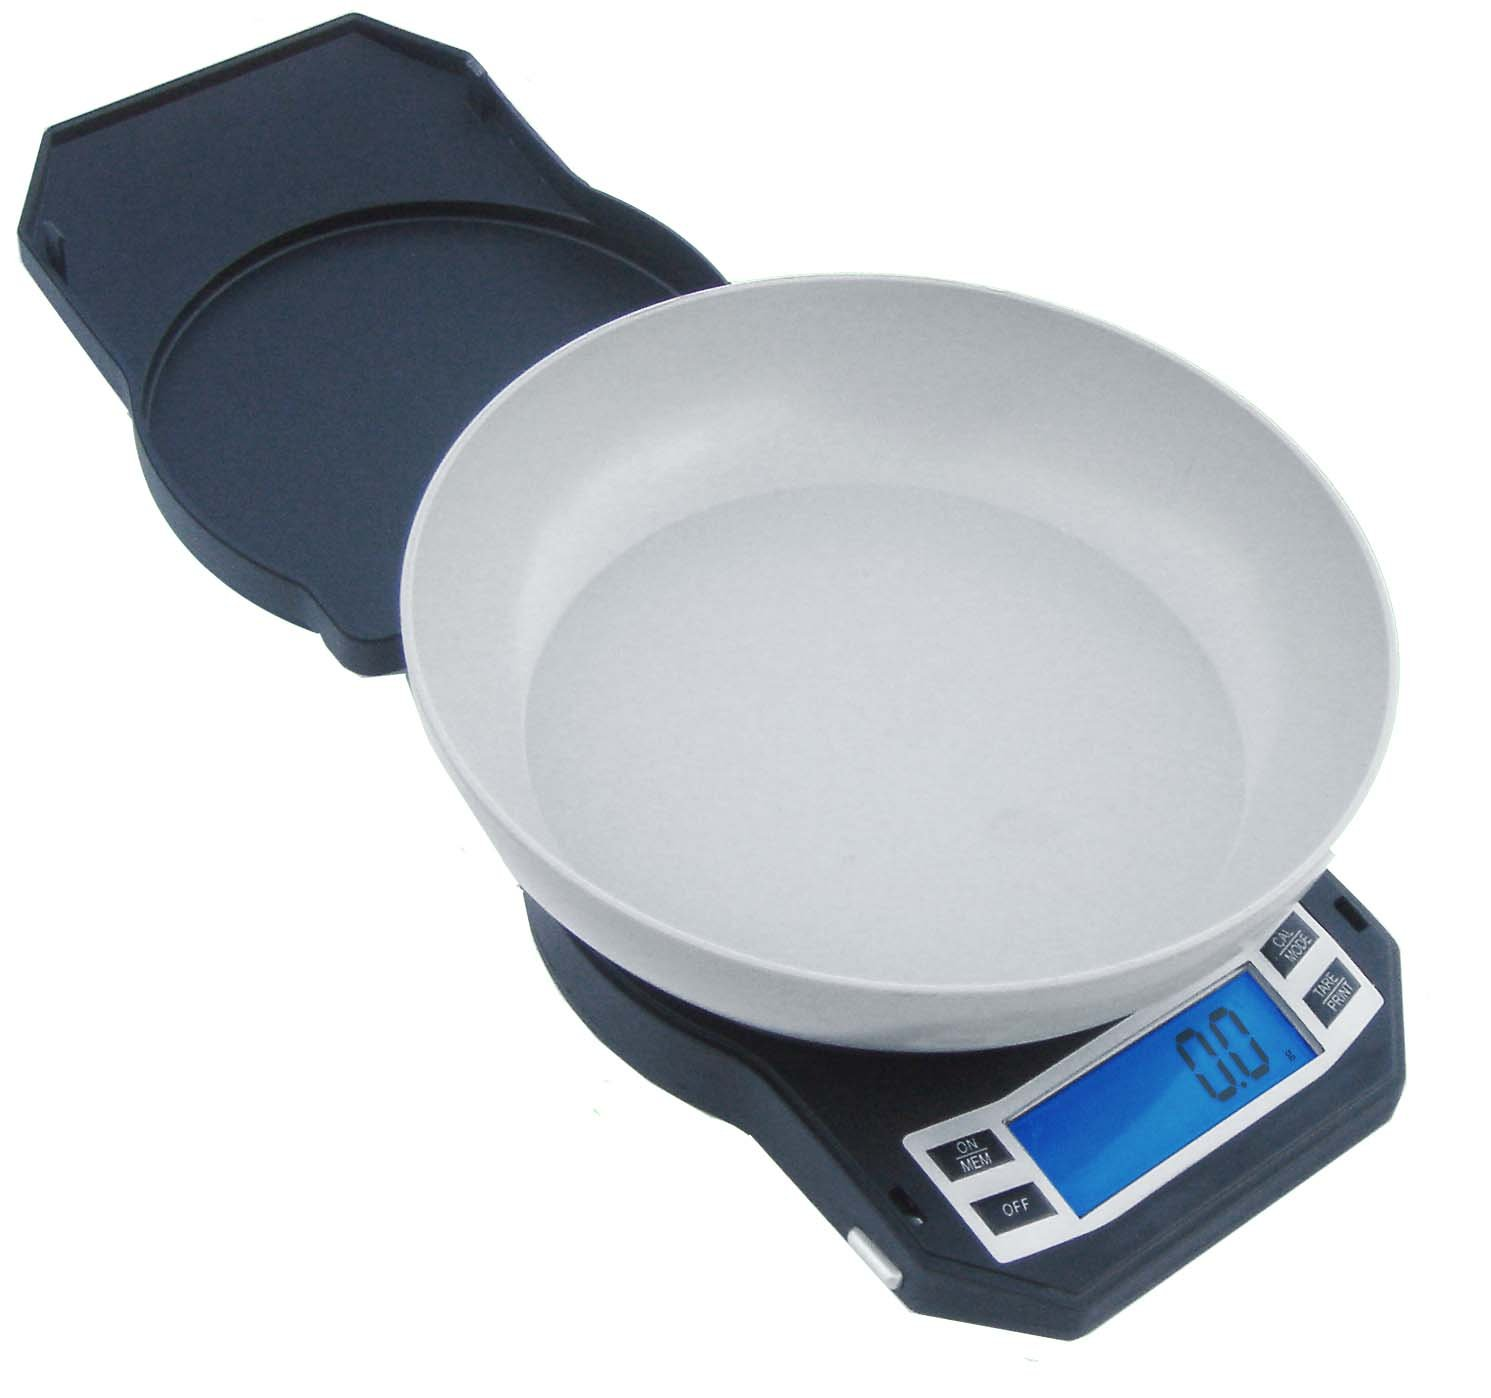 American Weigh Scales LB-501 Digital Kitchen Scale AWS Home